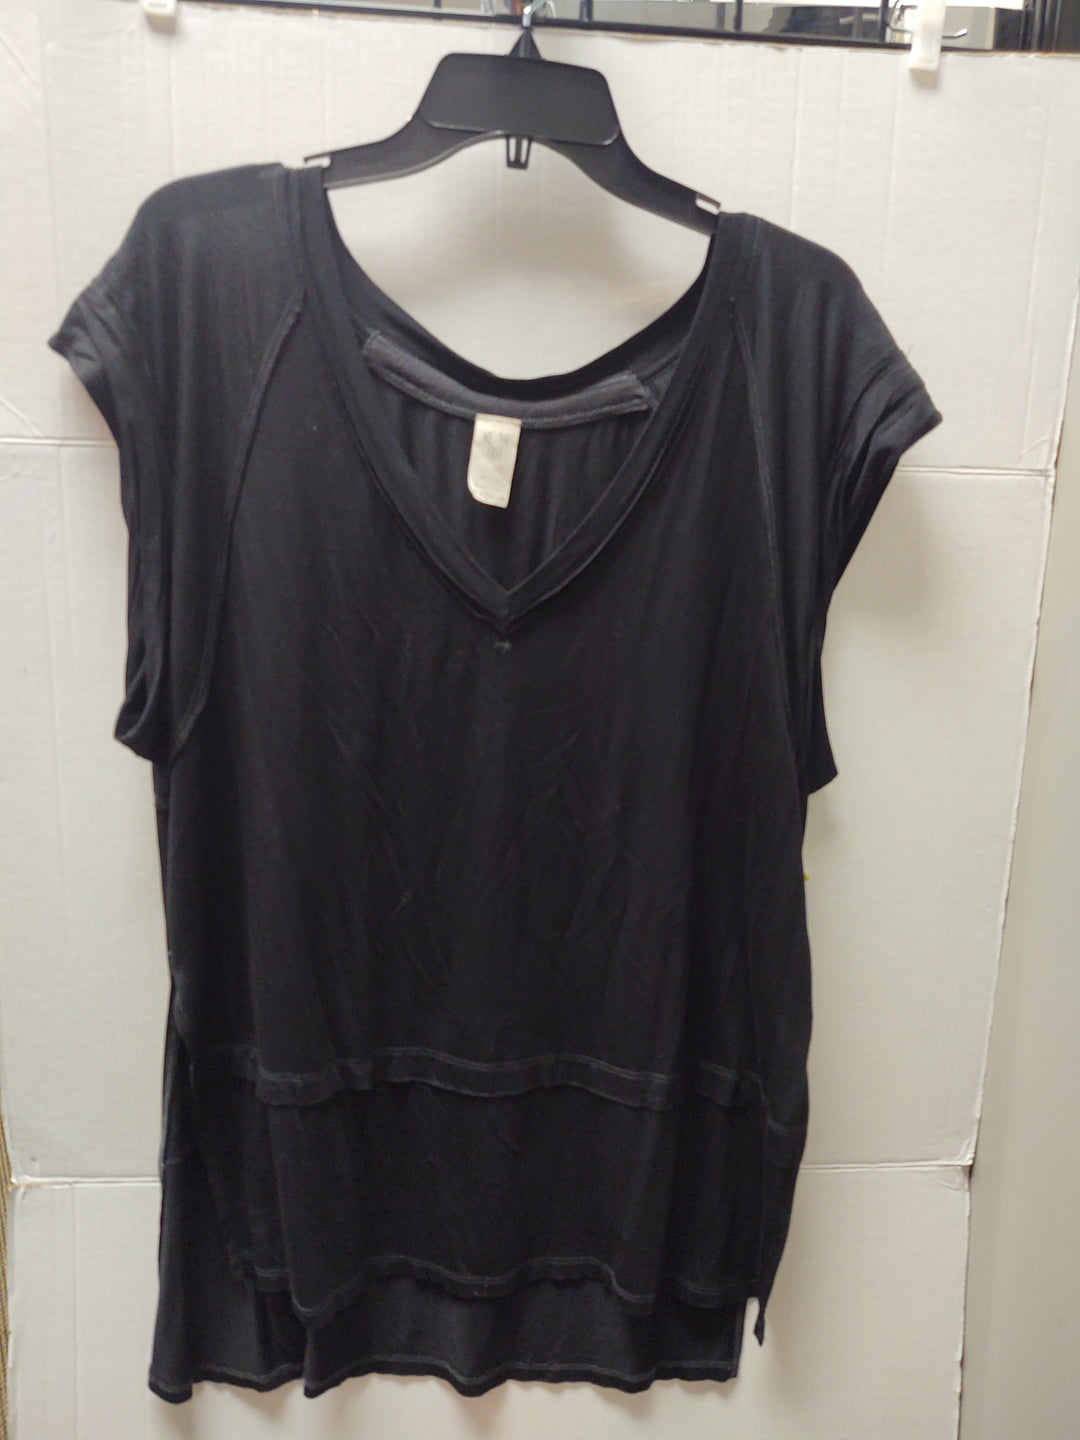 Primary Photo - BRAND: WE THE FREE <BR>STYLE: TOP SHORT SLEEVE <BR>COLOR: BLACK <BR>SIZE: S <BR>SKU: 133-13374-2275